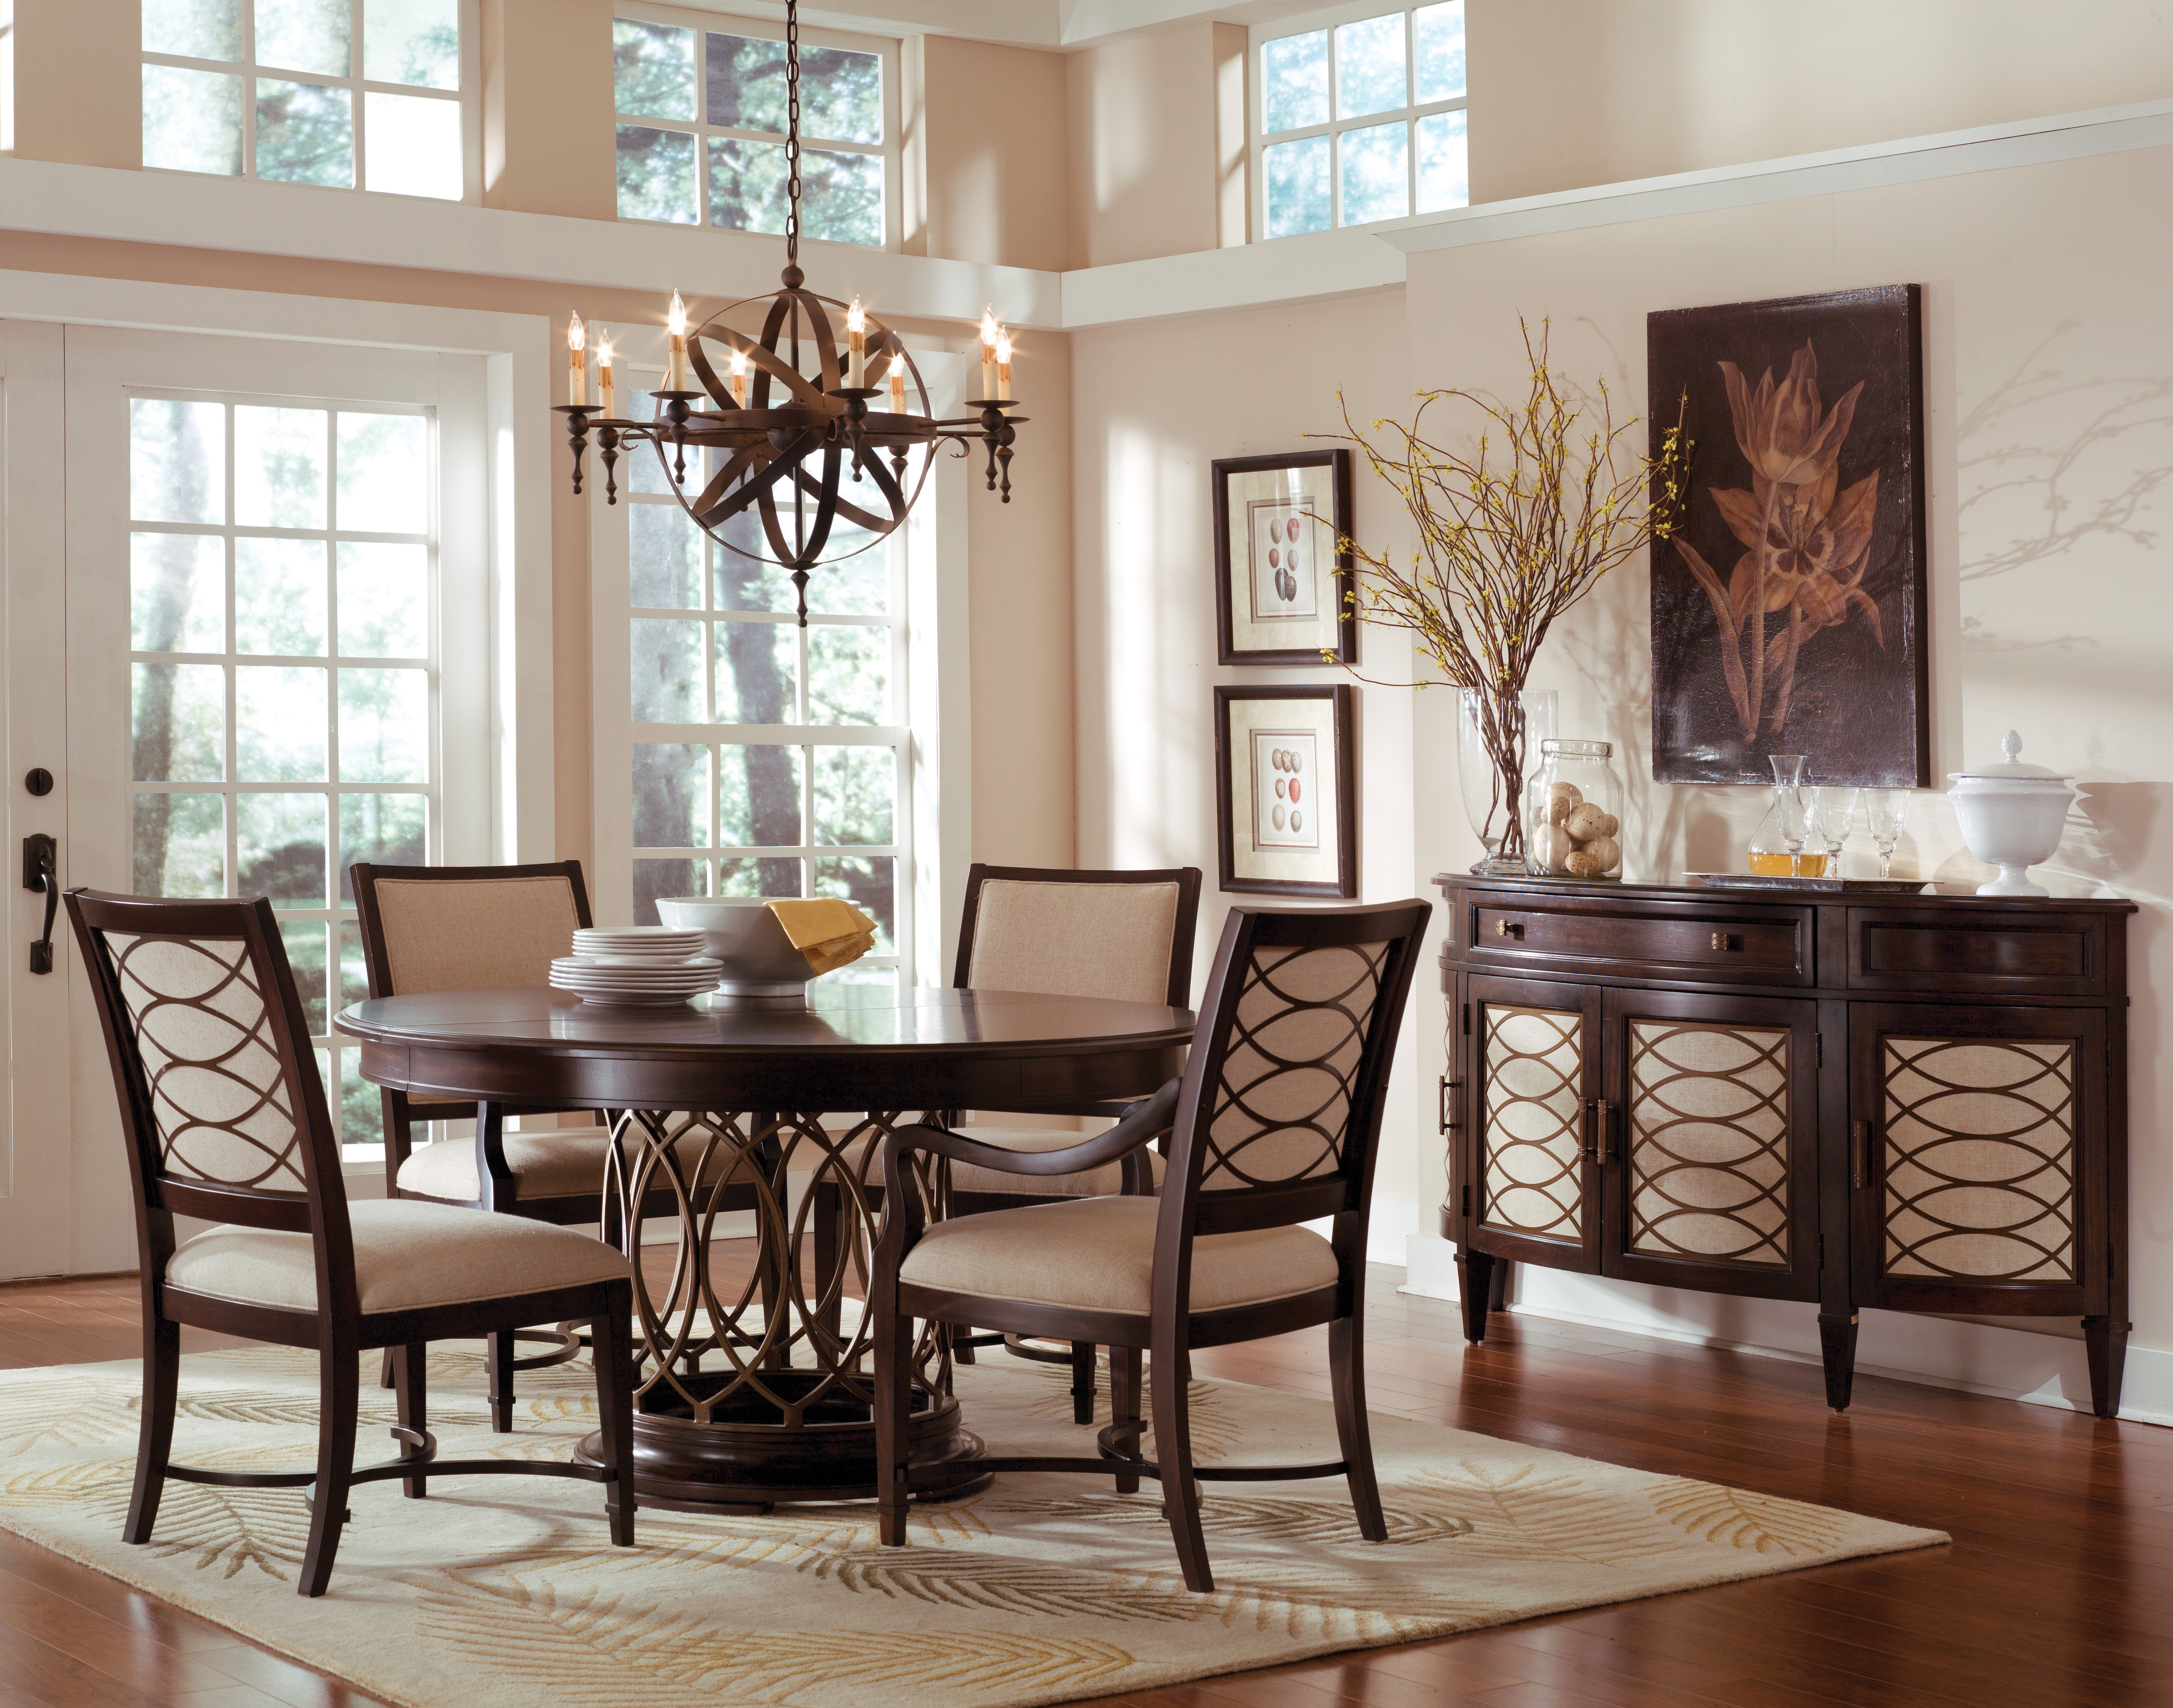 Decorating Nice Dining Table Set 6 Seater And House Beautiful Rooms In Recent Candice Ii Round Dining Tables (View 10 of 25)